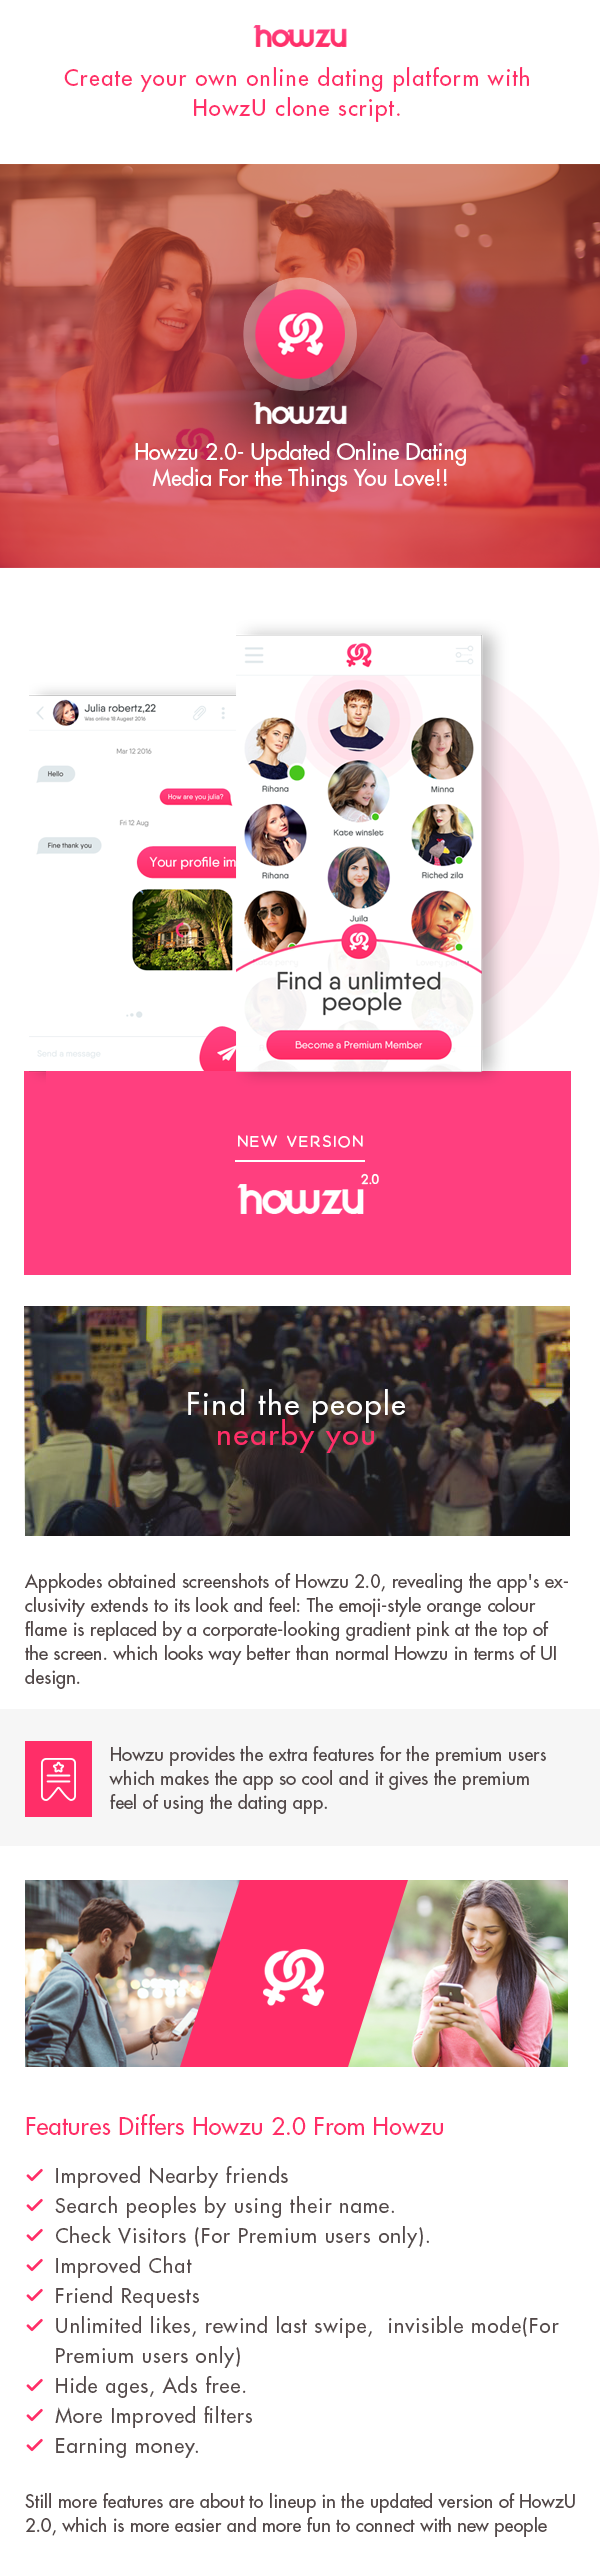 https://appkodes.com/howzu-dating-app-done-php-tinder-clone/ website snapshot